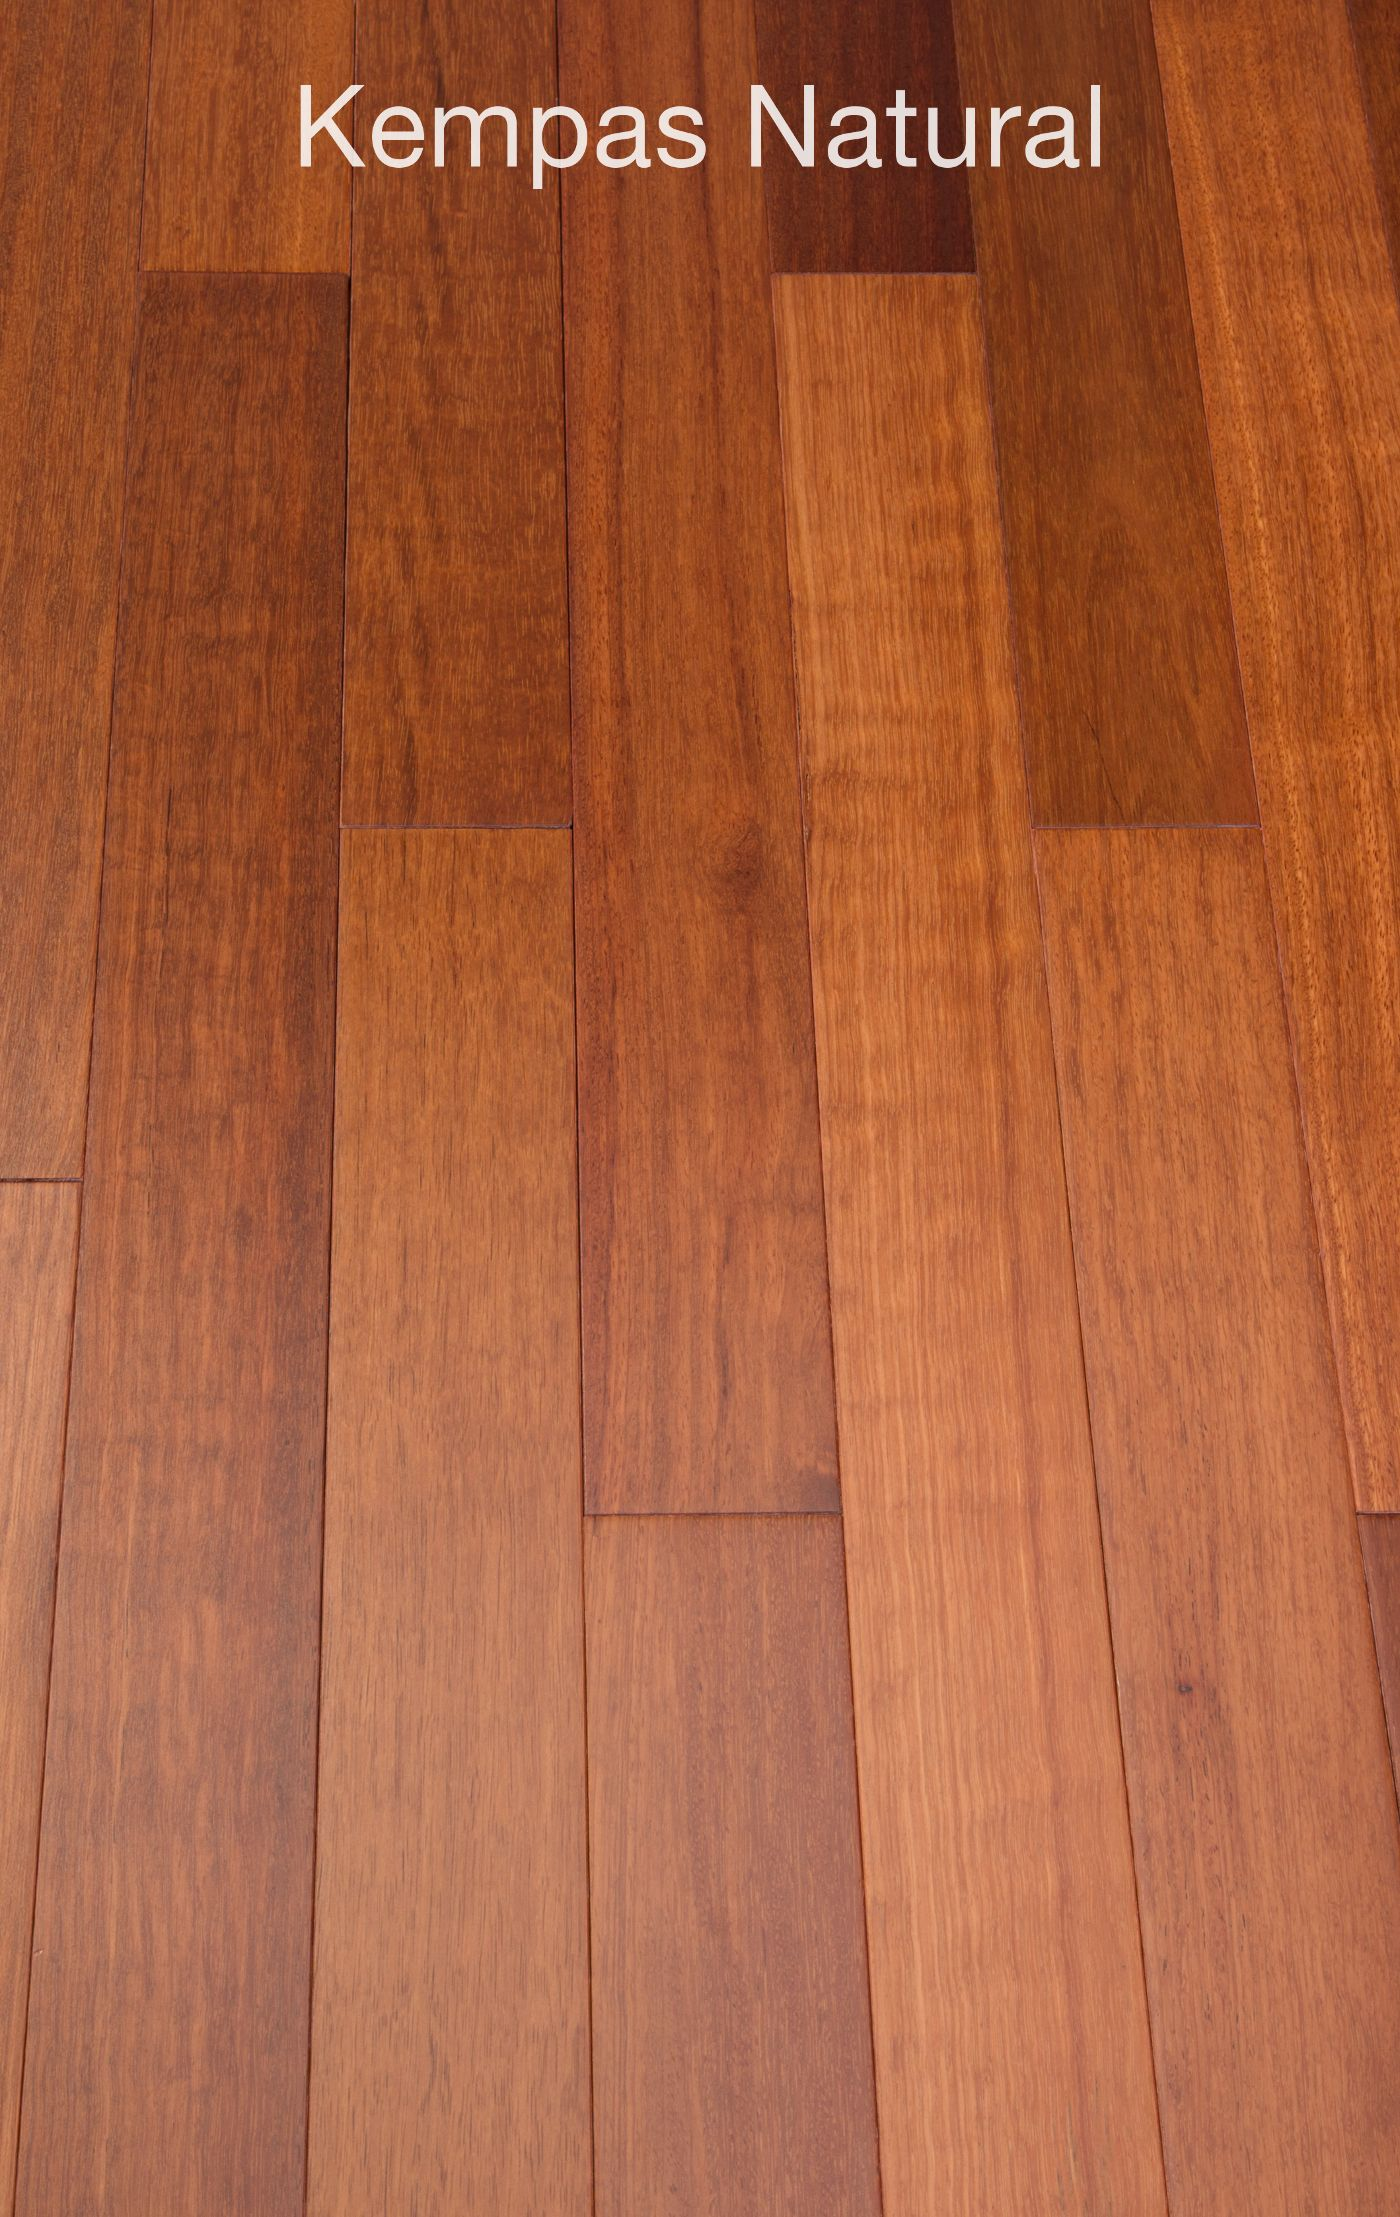 Beautiful Natural Kempas Prefinished Hardwood Floors By Nova Elemental  Exotics. Interior Design Ideas